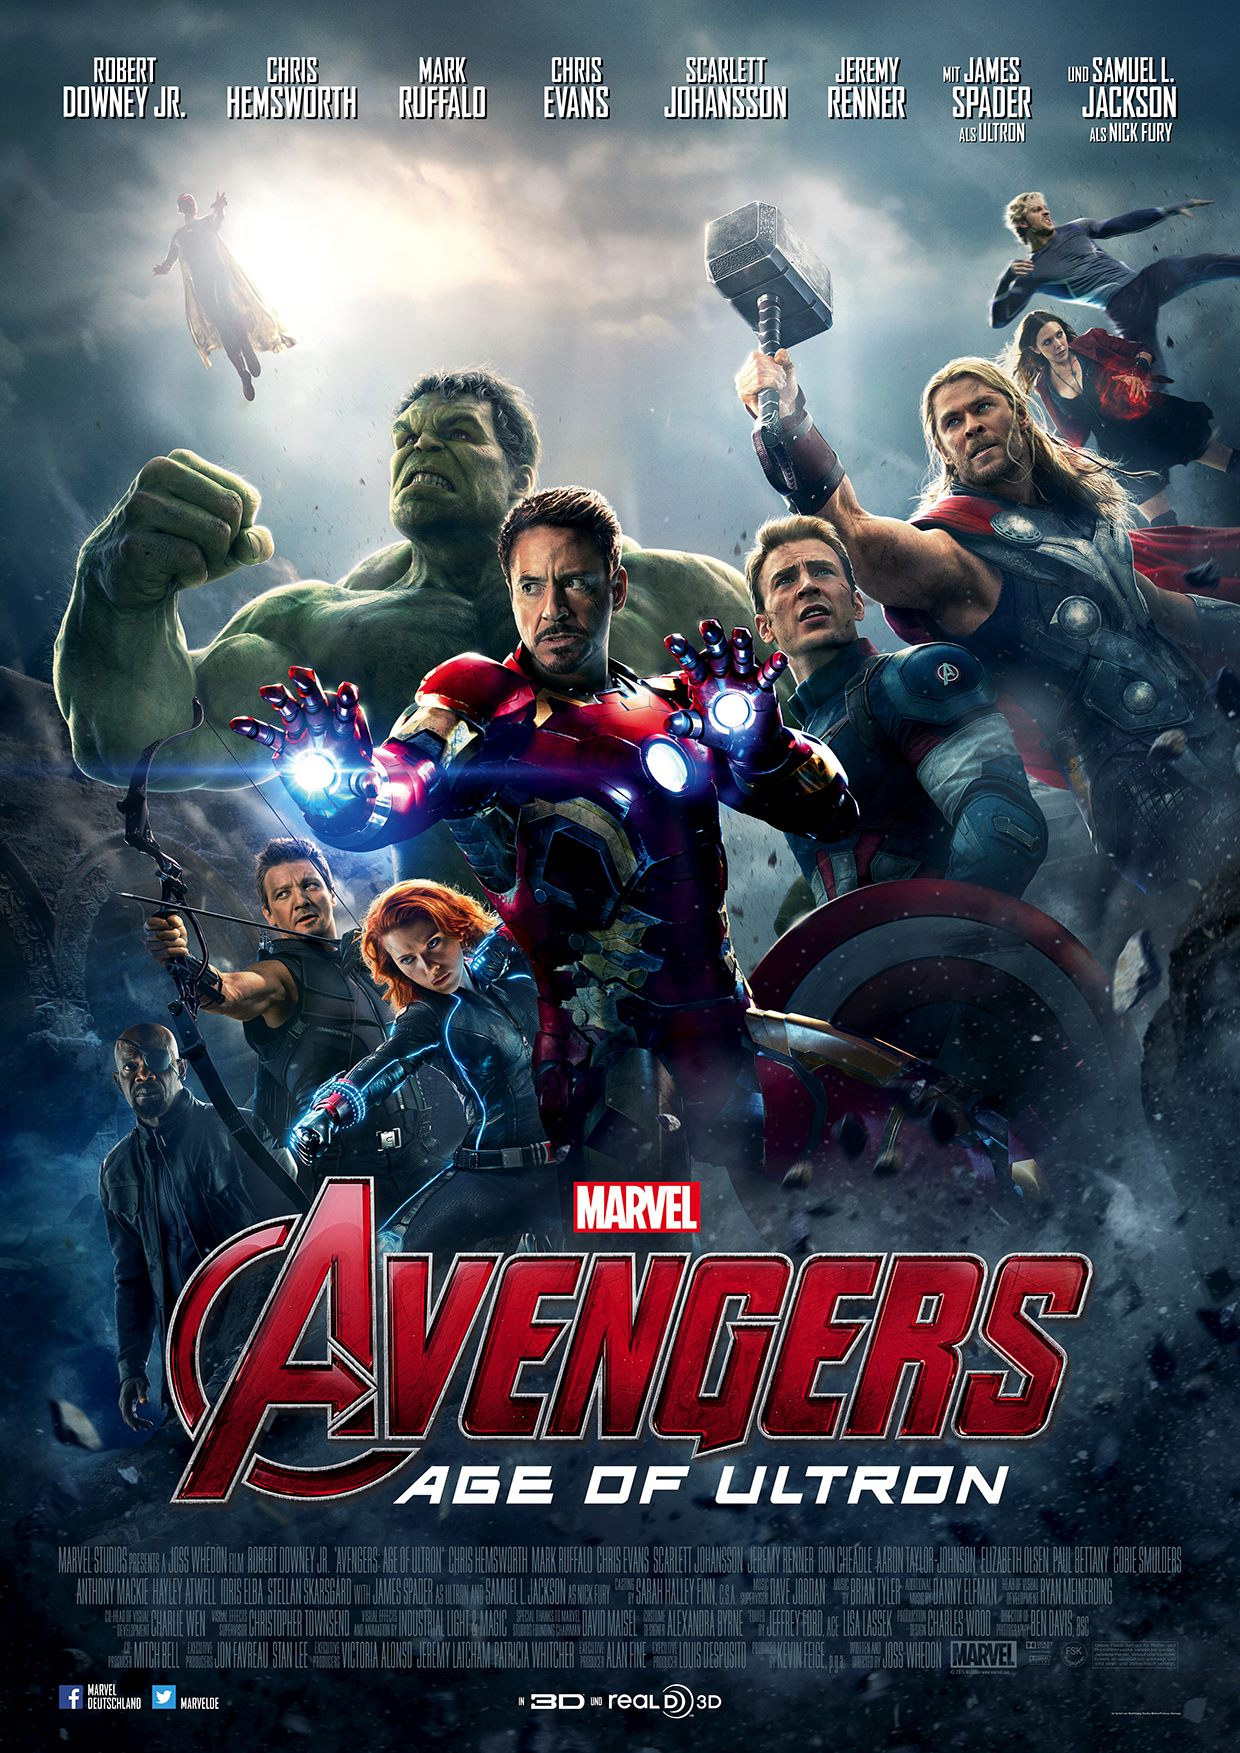 Avengers: Age of Ultron (2015) - 720p HD (Hindi Dubbed)